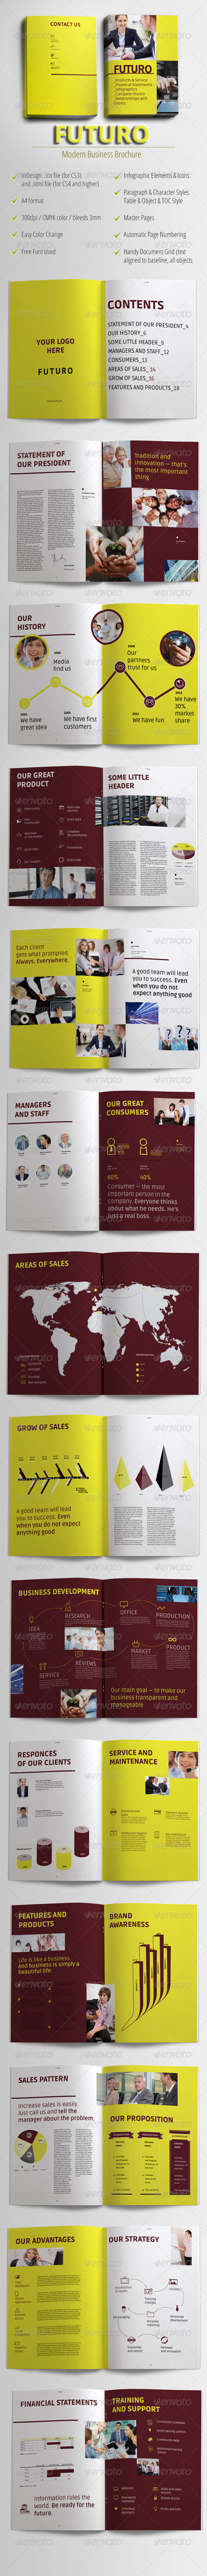 GraphicRiver Futuro Modern Business Brochure 4492989